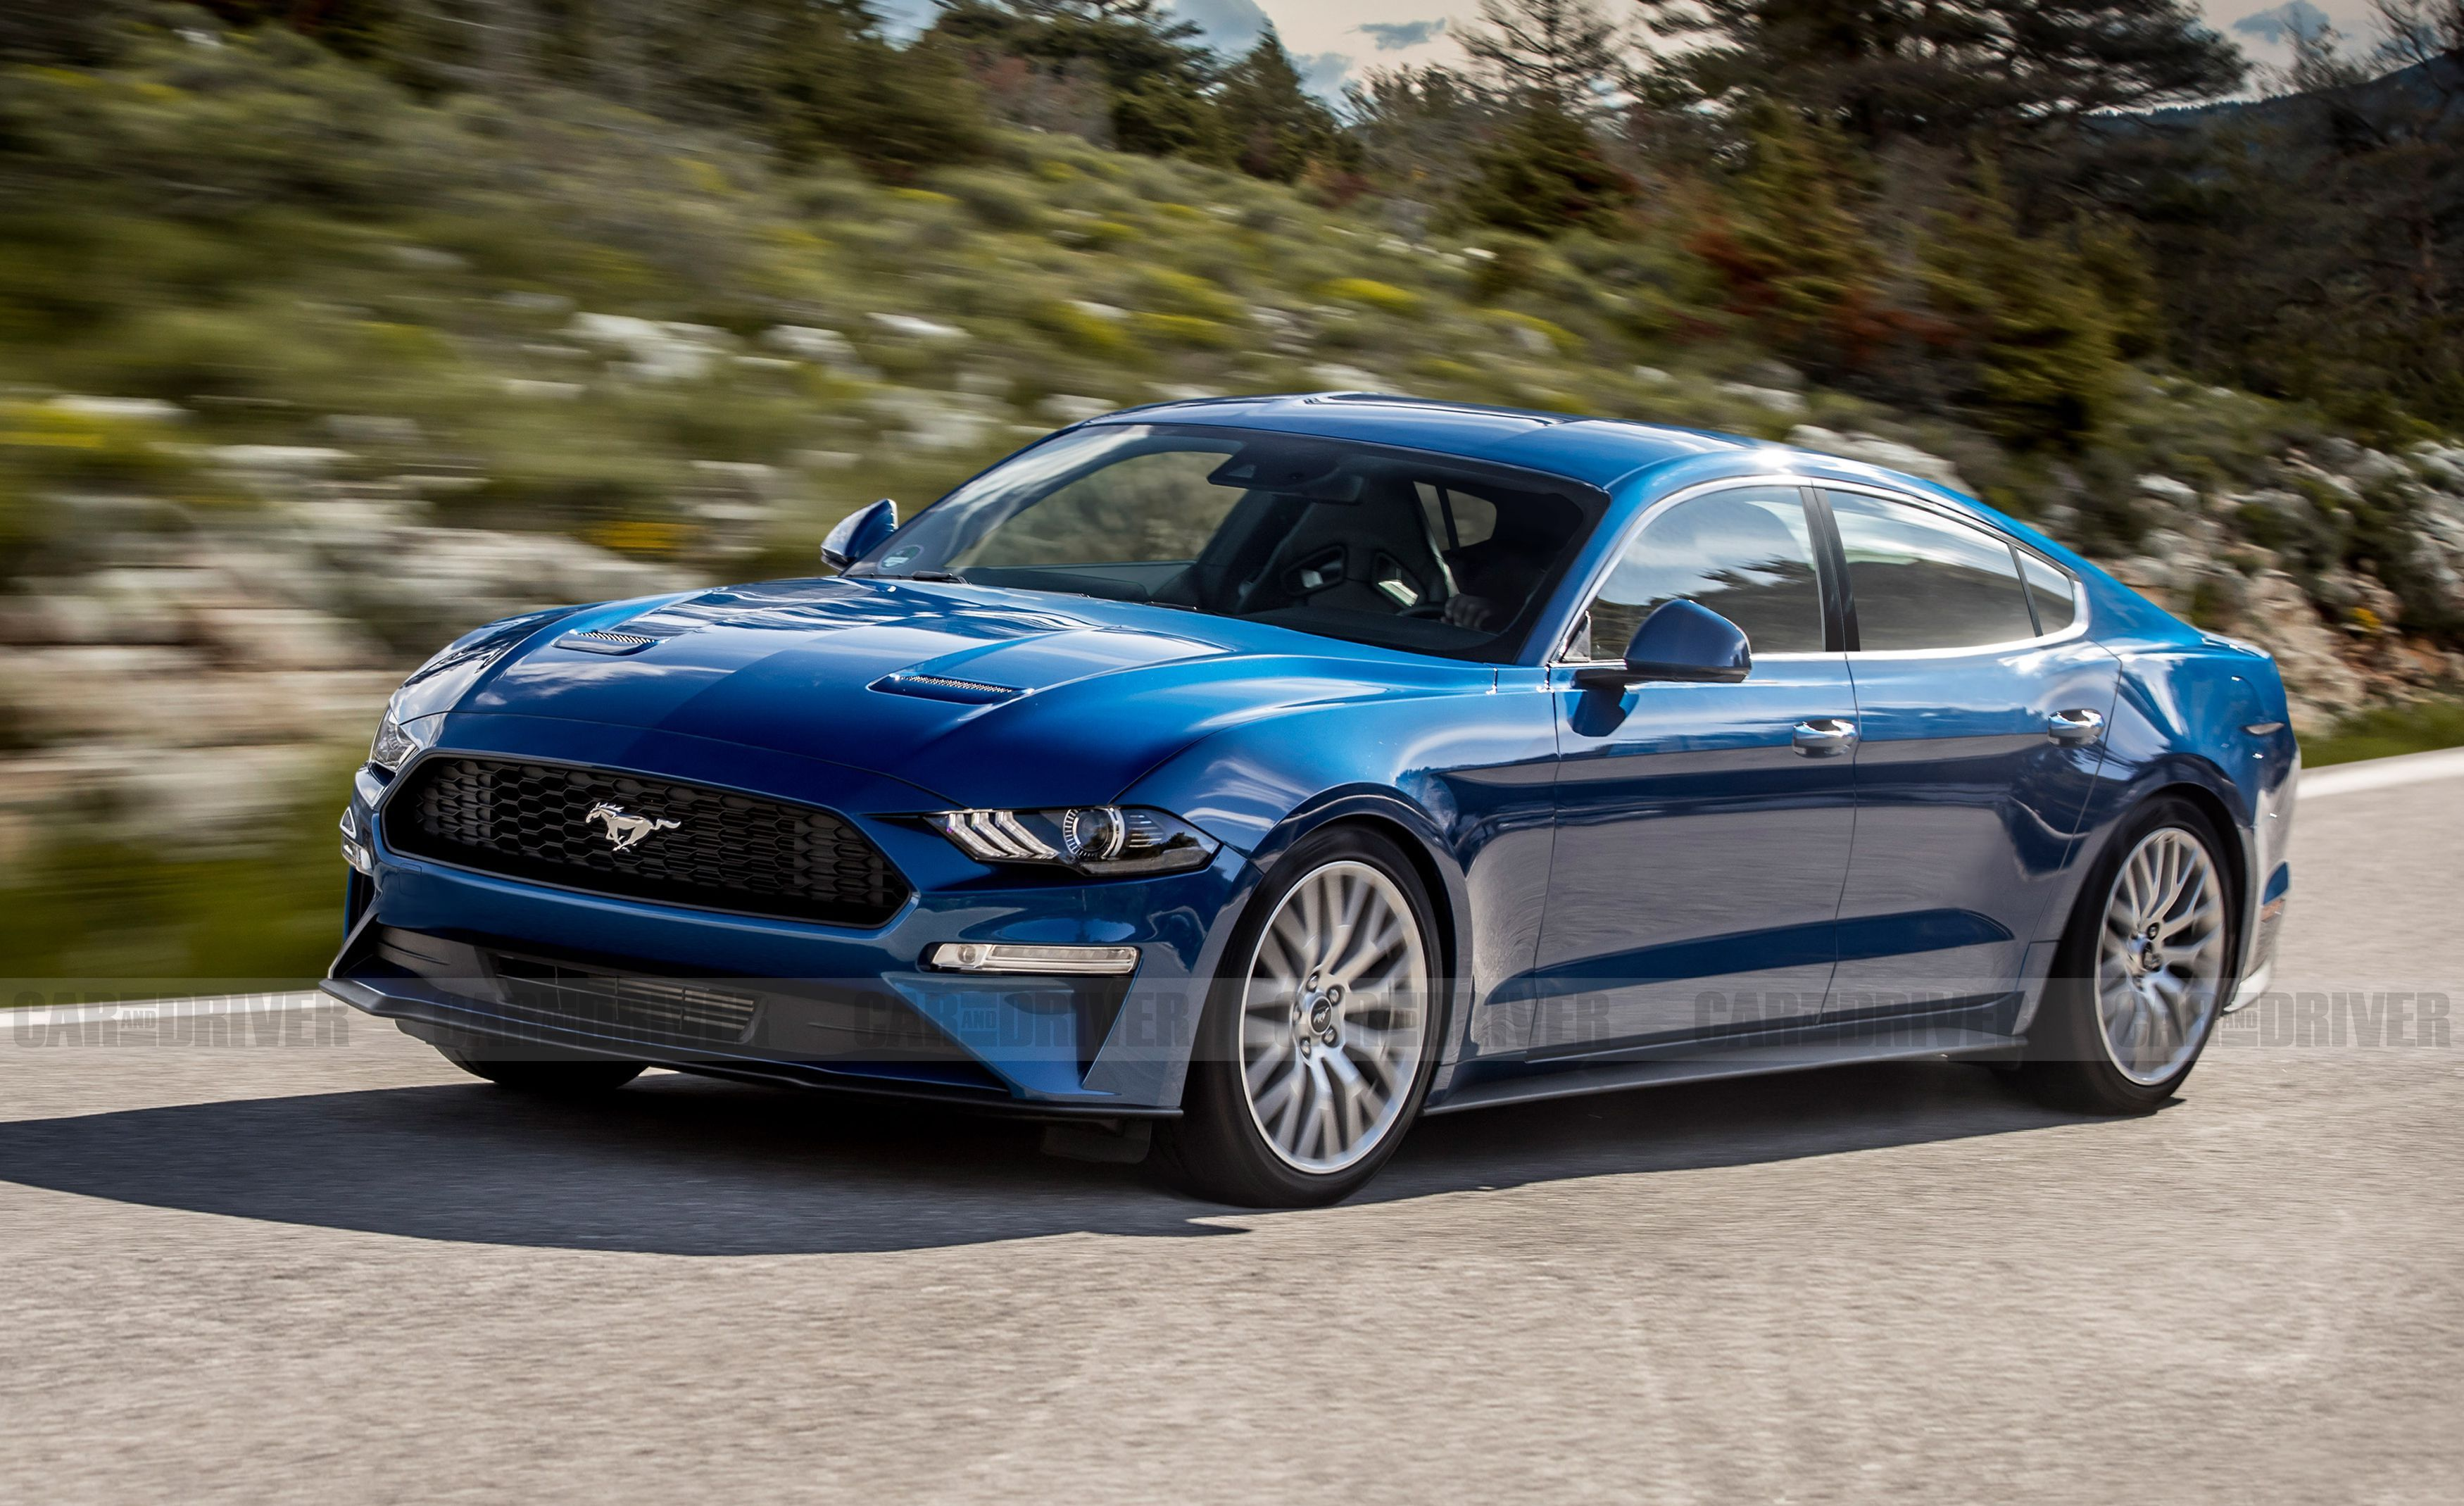 A Four Door Ford Mustang Is Not As Crazy As It Sounds Ford Mustang New Ford Mustang Ford Mustang Ecoboost